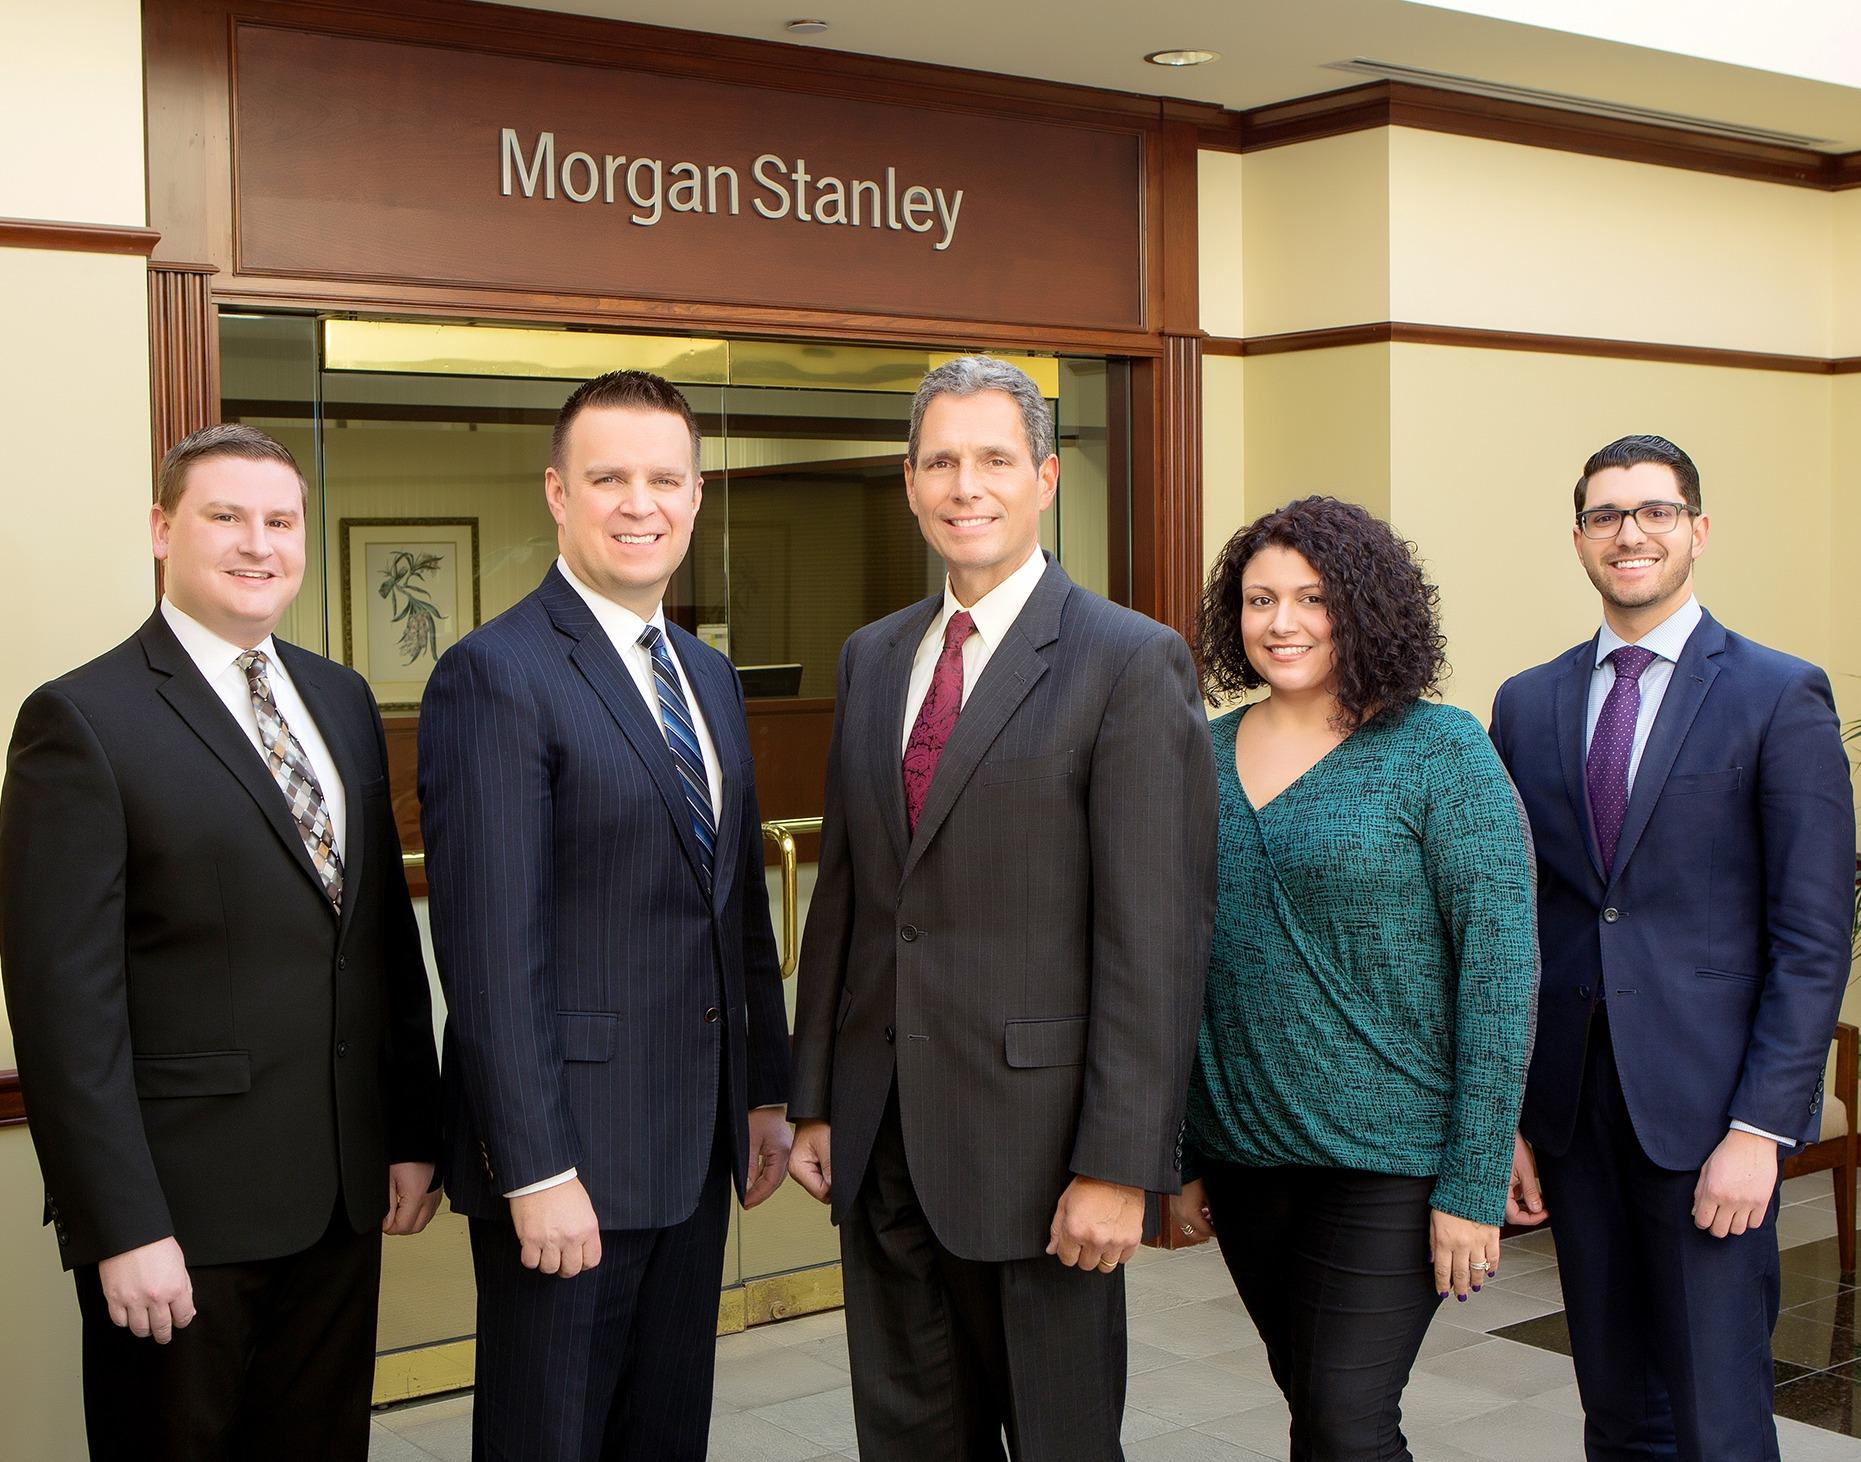 Scharf / DeSarro Group | Utica, NY | Morgan Stanley Wealth Management